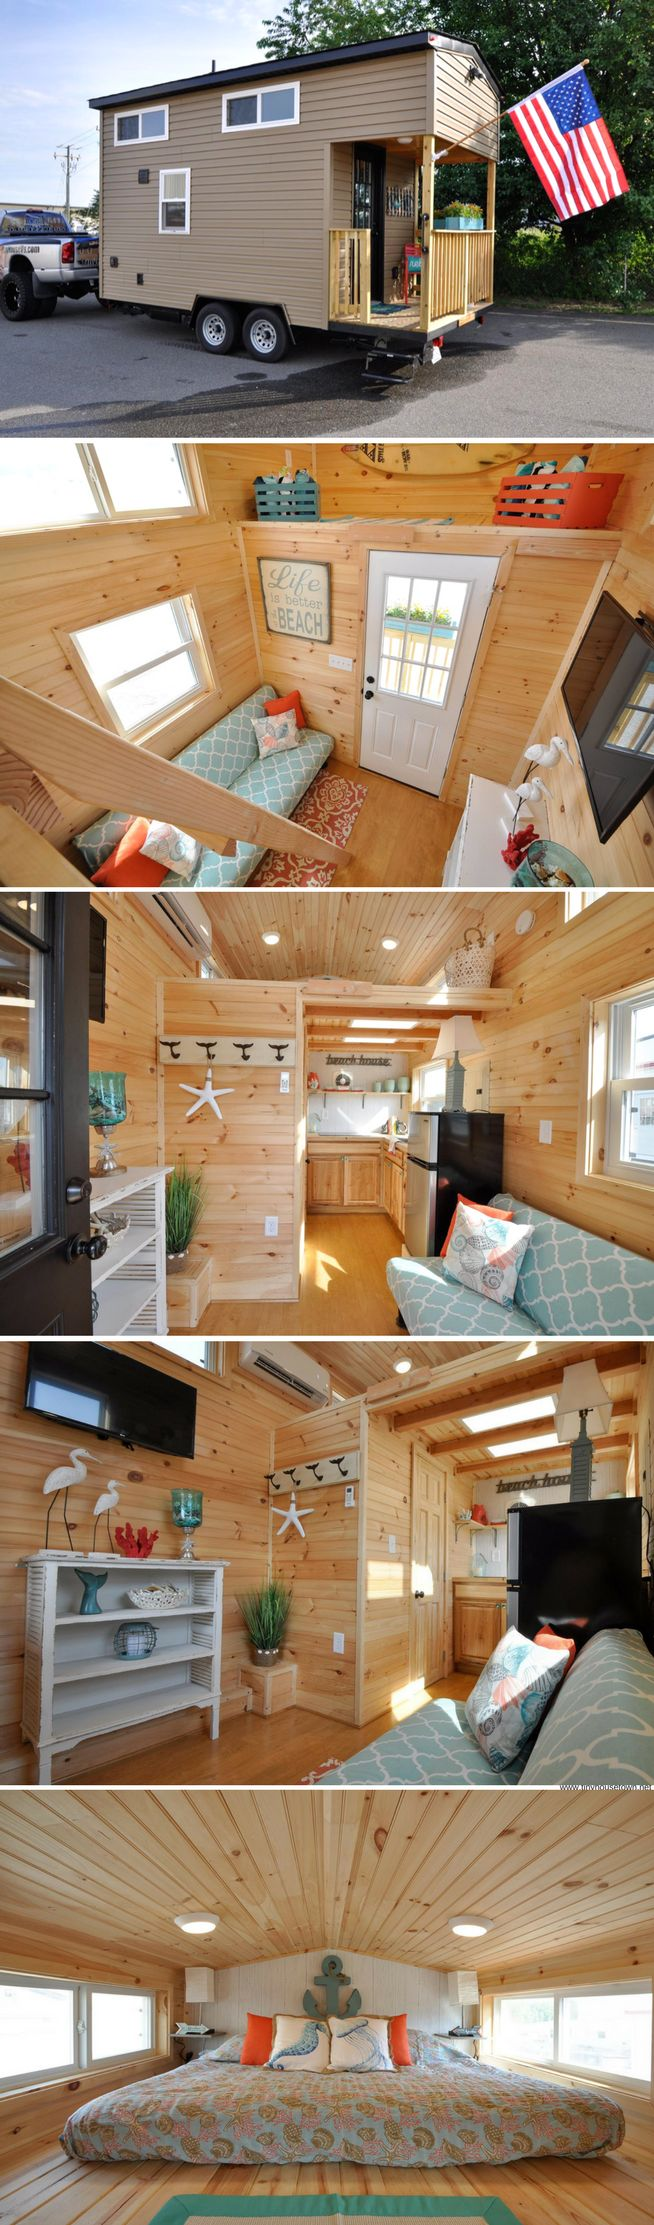 The Harbor House from Tiny House Building Company